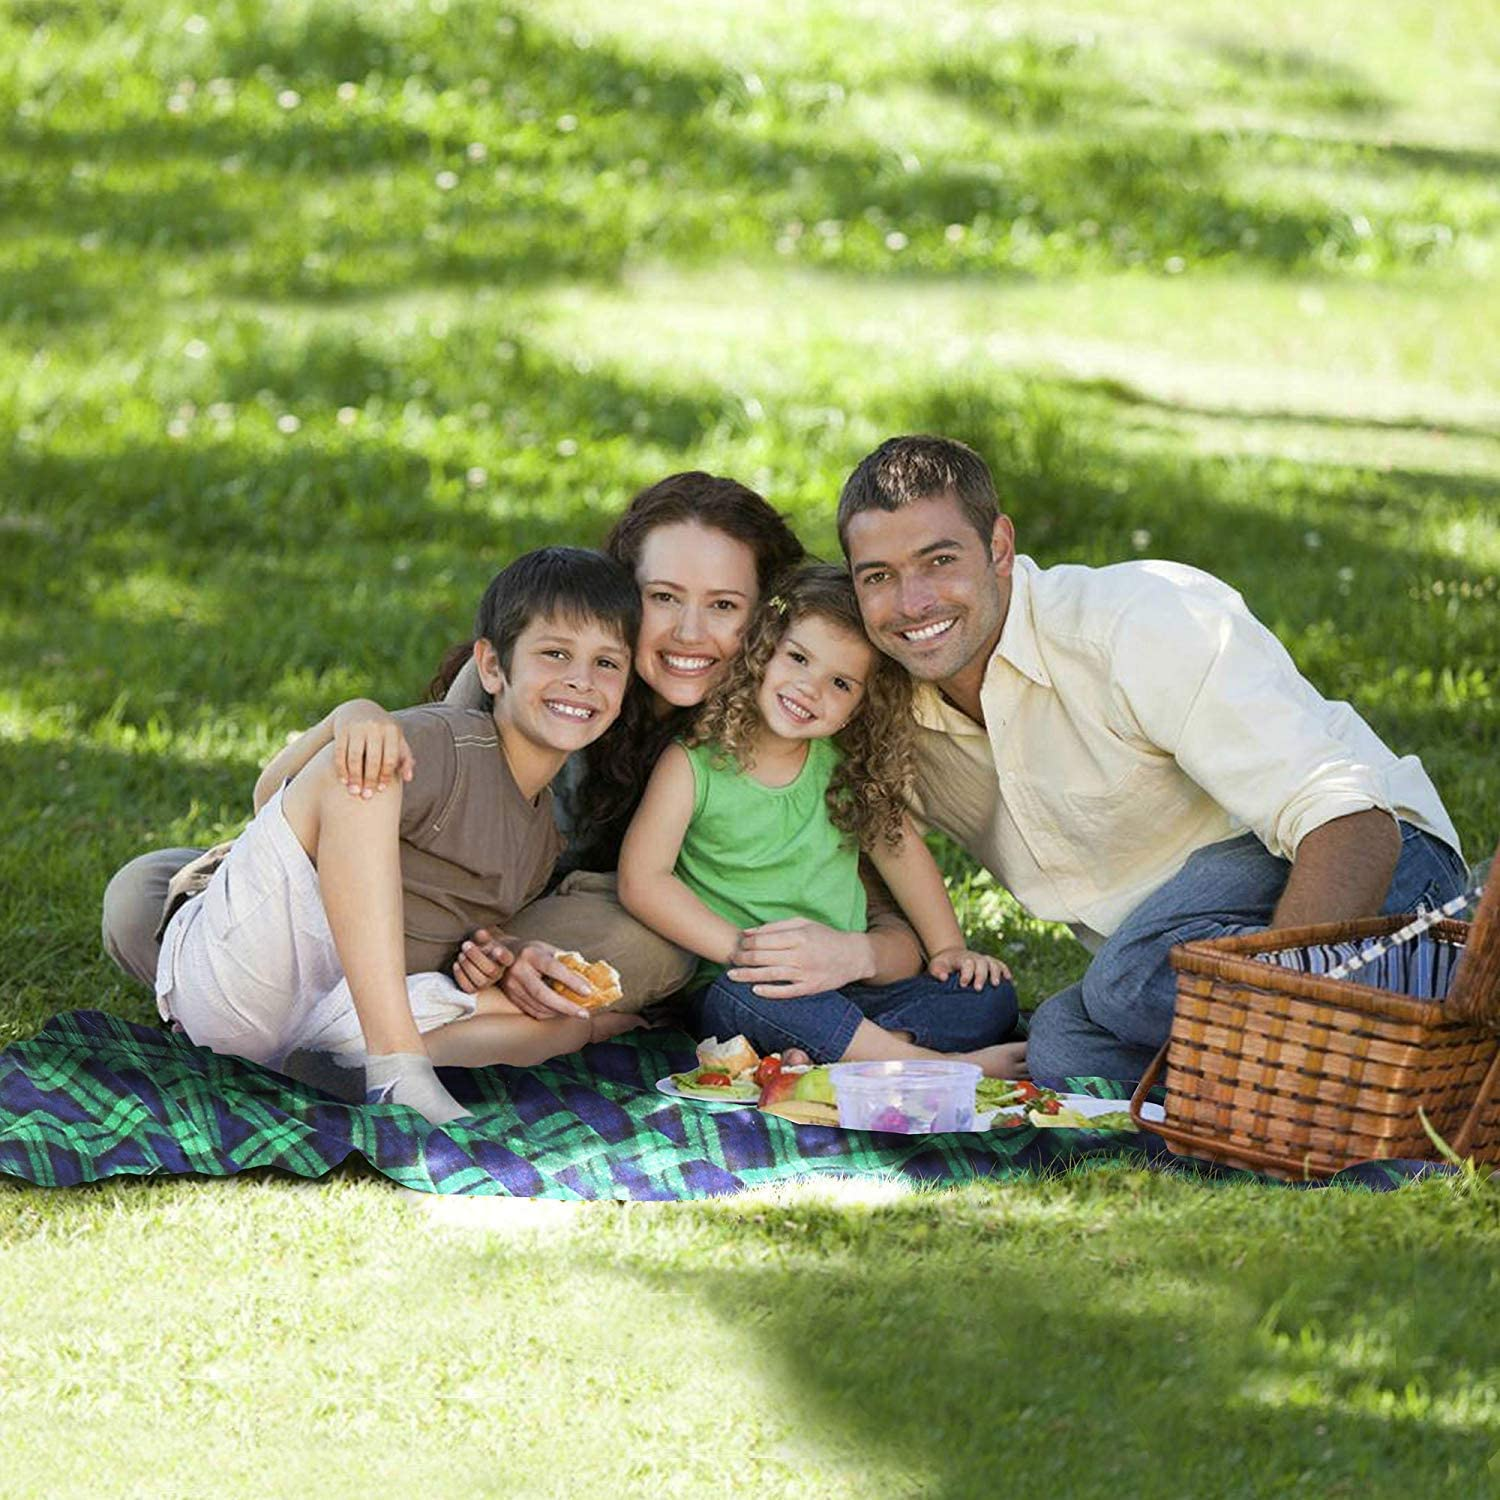 family picnic with KAMUI blanket